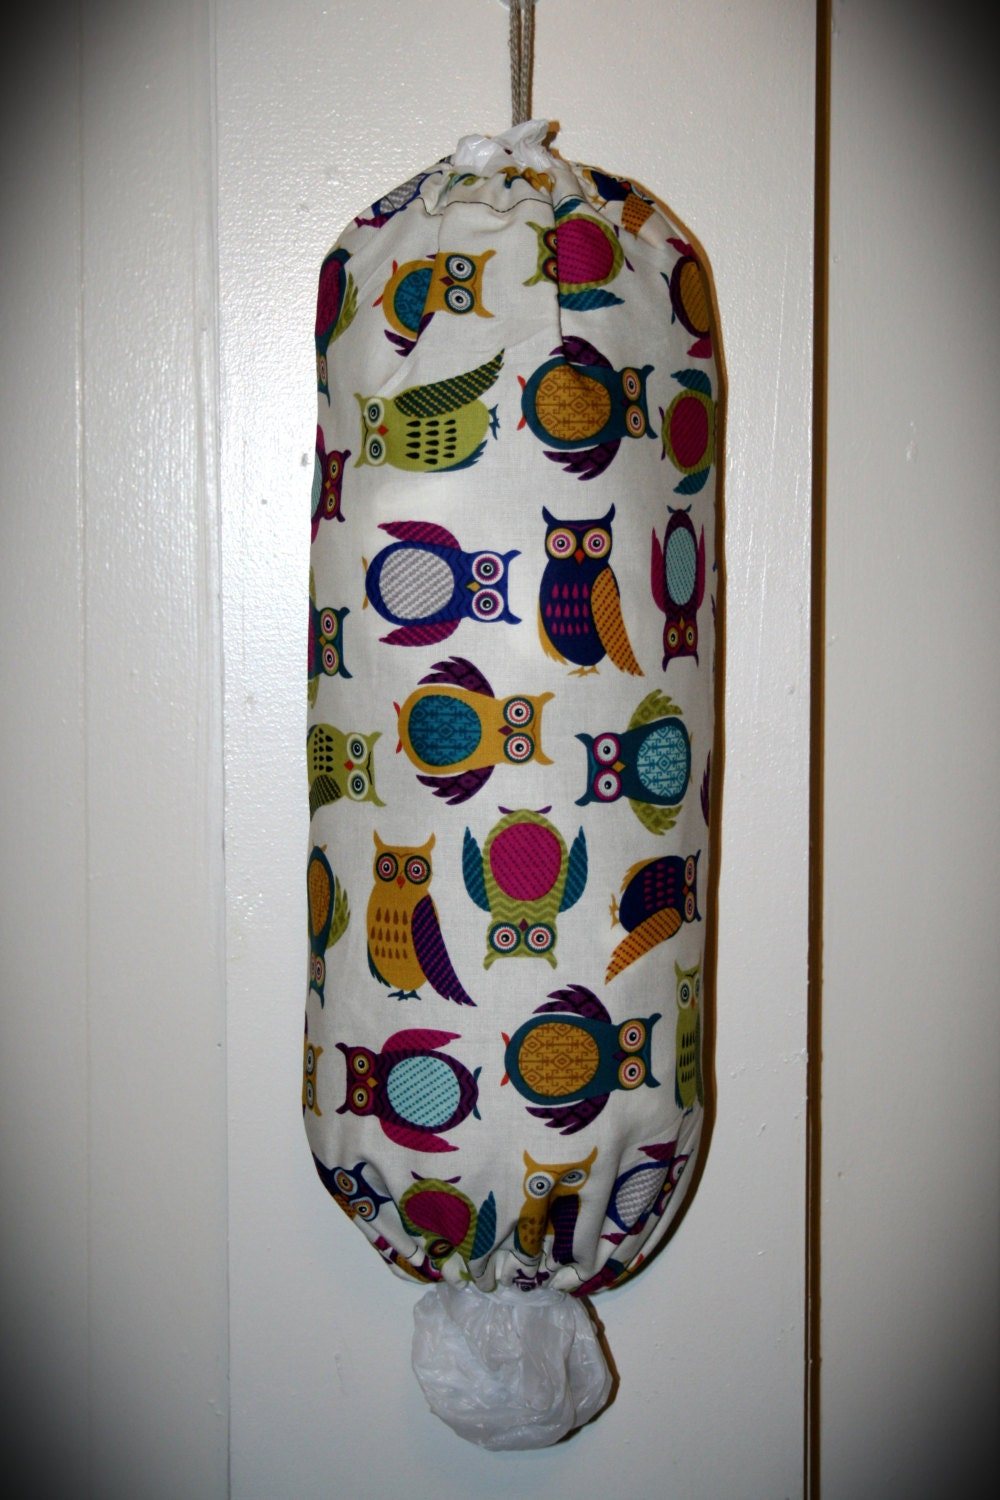 Grocery bag holder plastic dispenser cute owl